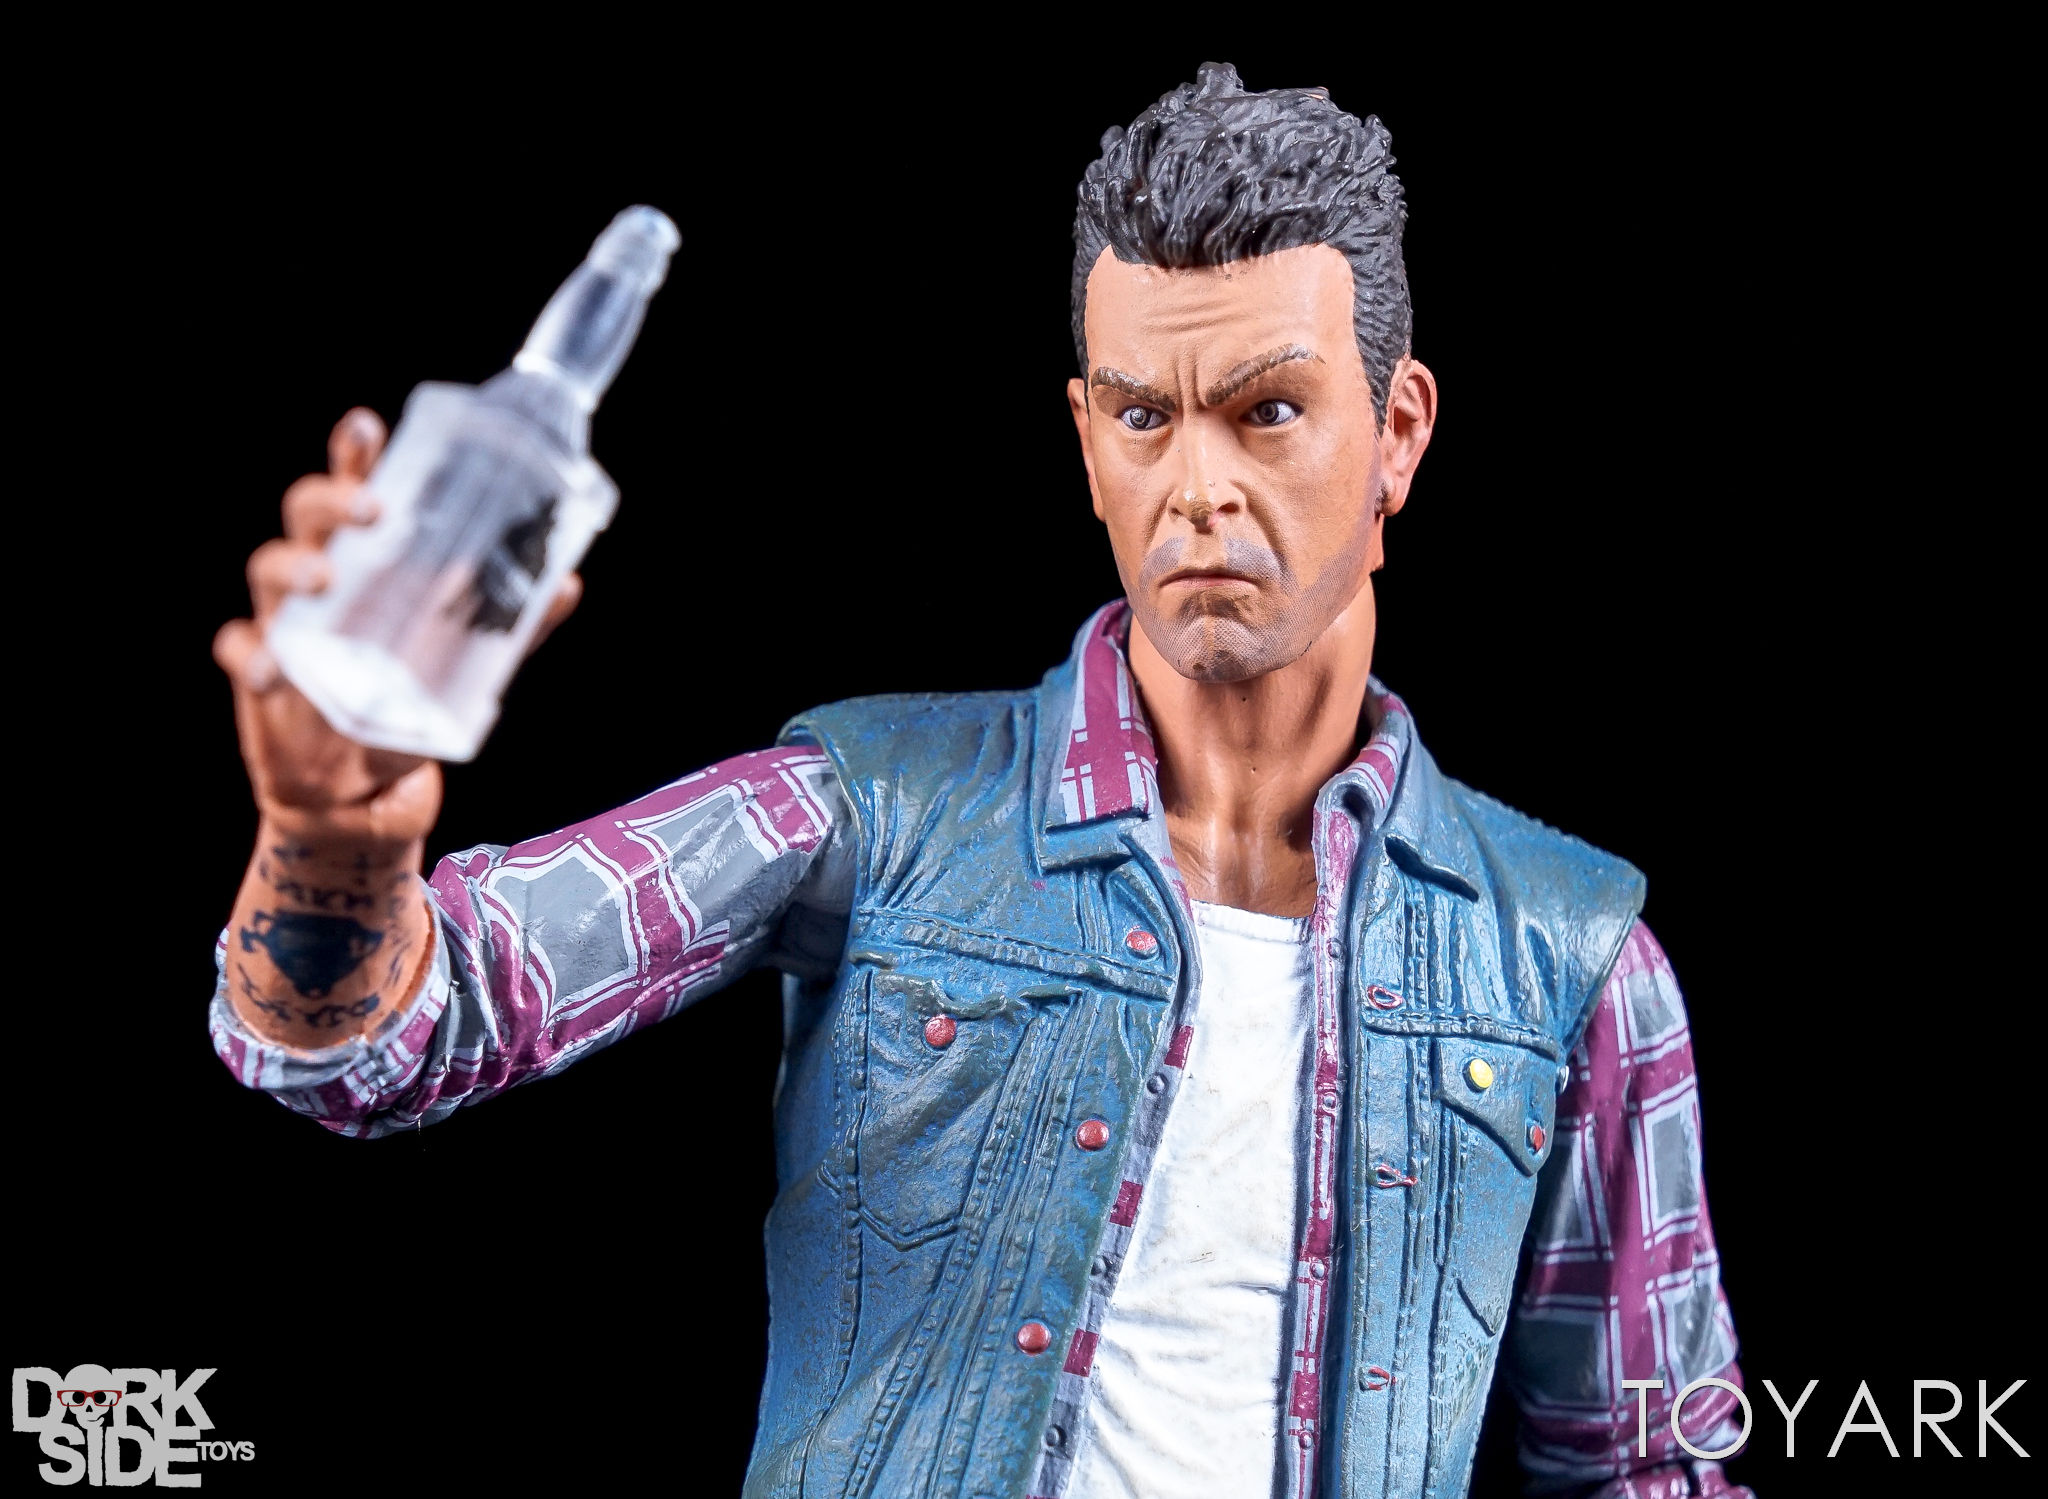 http://news.toyark.com/wp-content/uploads/sites/4/2017/05/NECA-Preacher-Figures-031.jpg